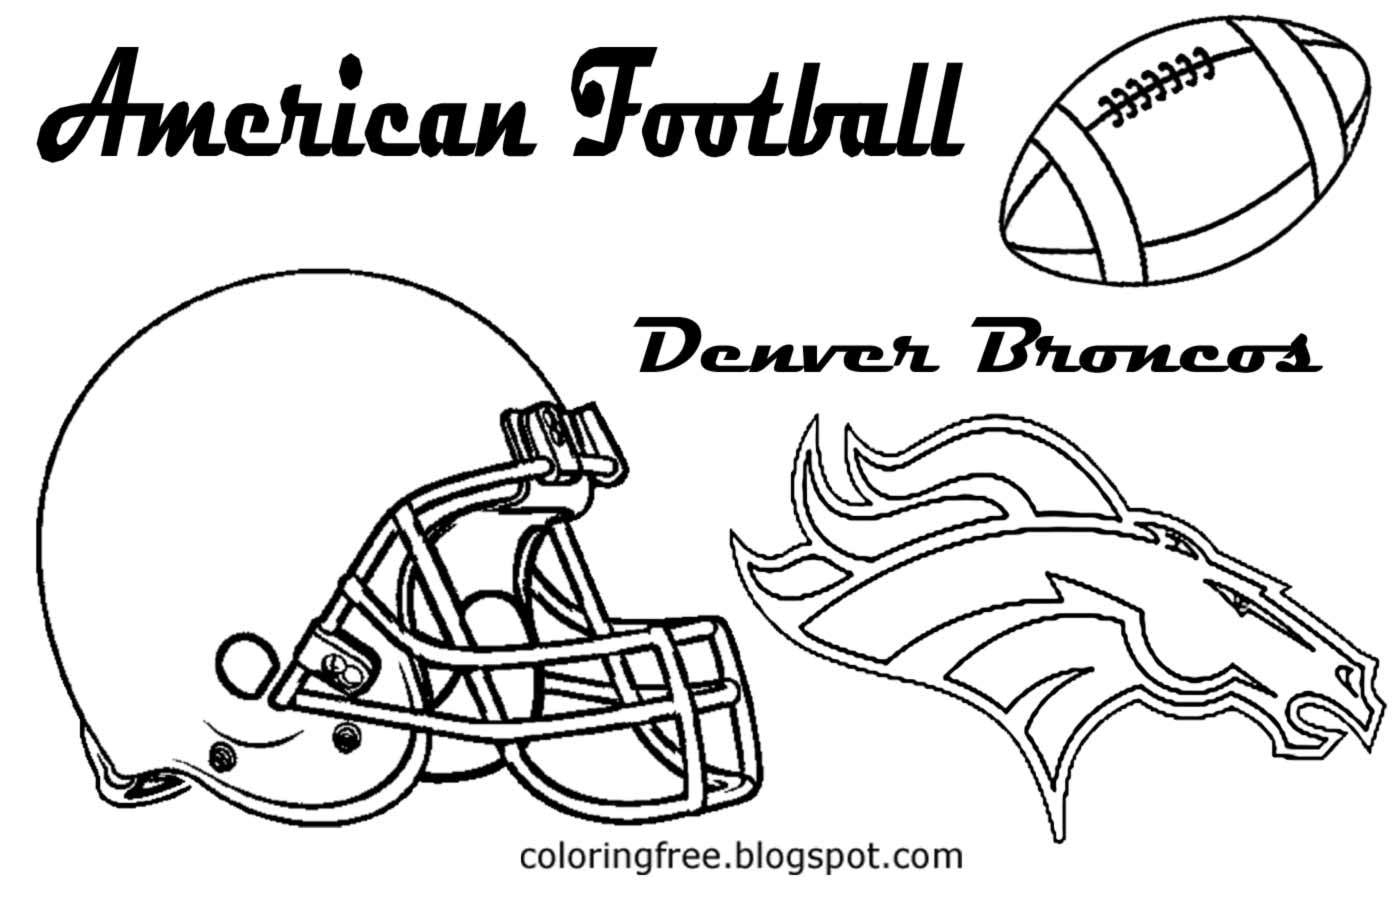 Football Color Pages Denver Broncos Football Coloring Pages 123 Coloring